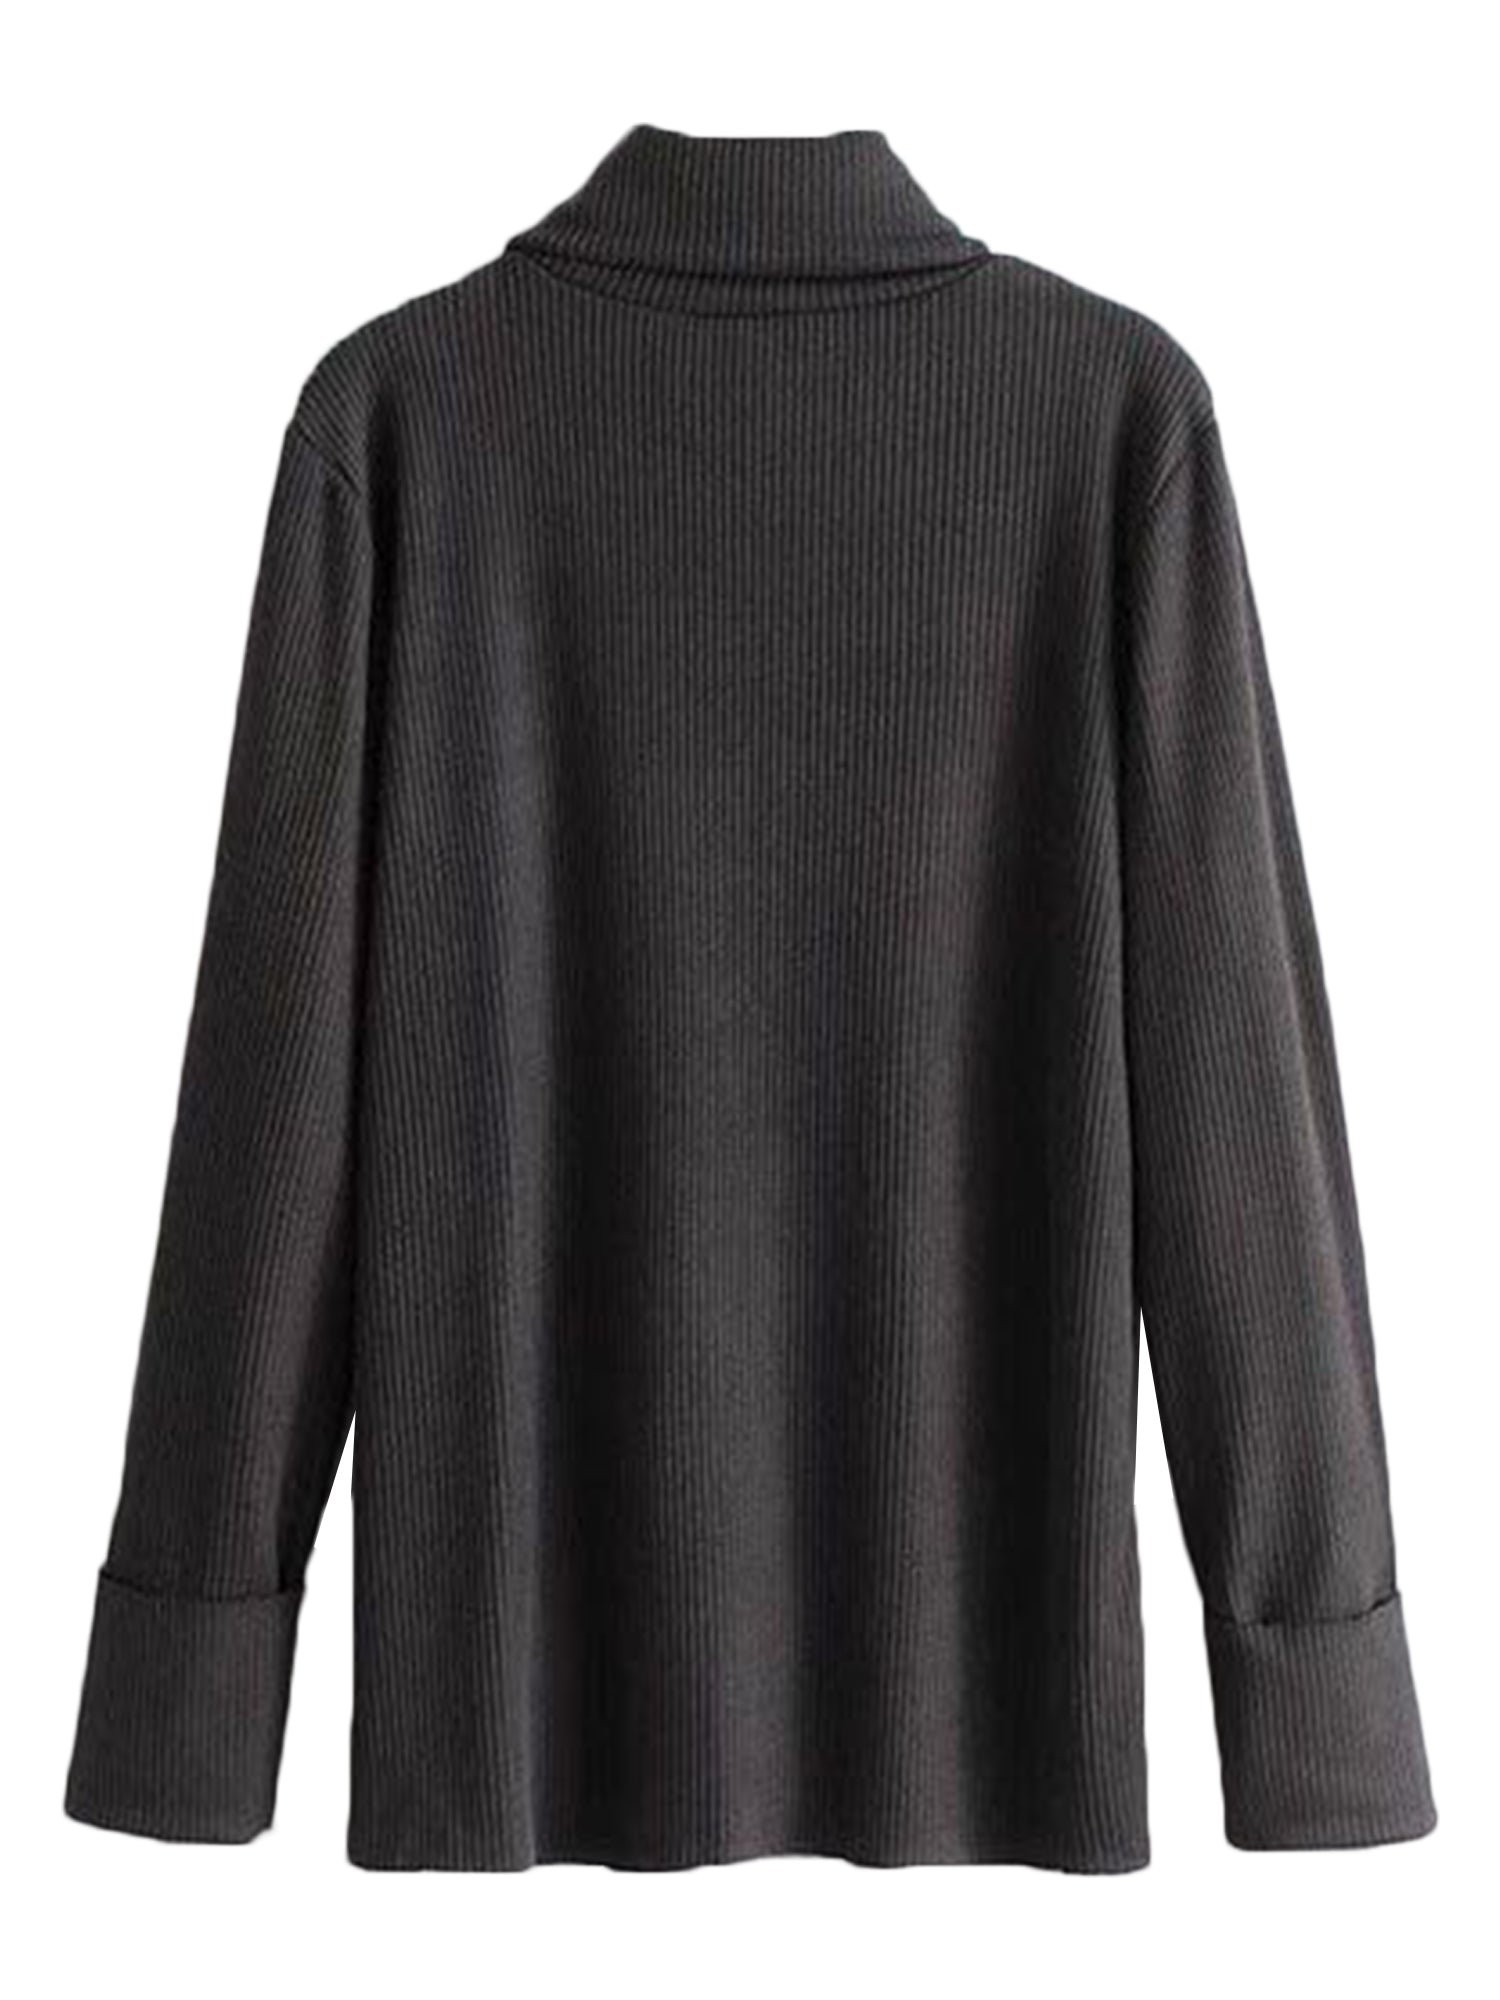 'Michelle' Black Turtleneck Pocket Sweater